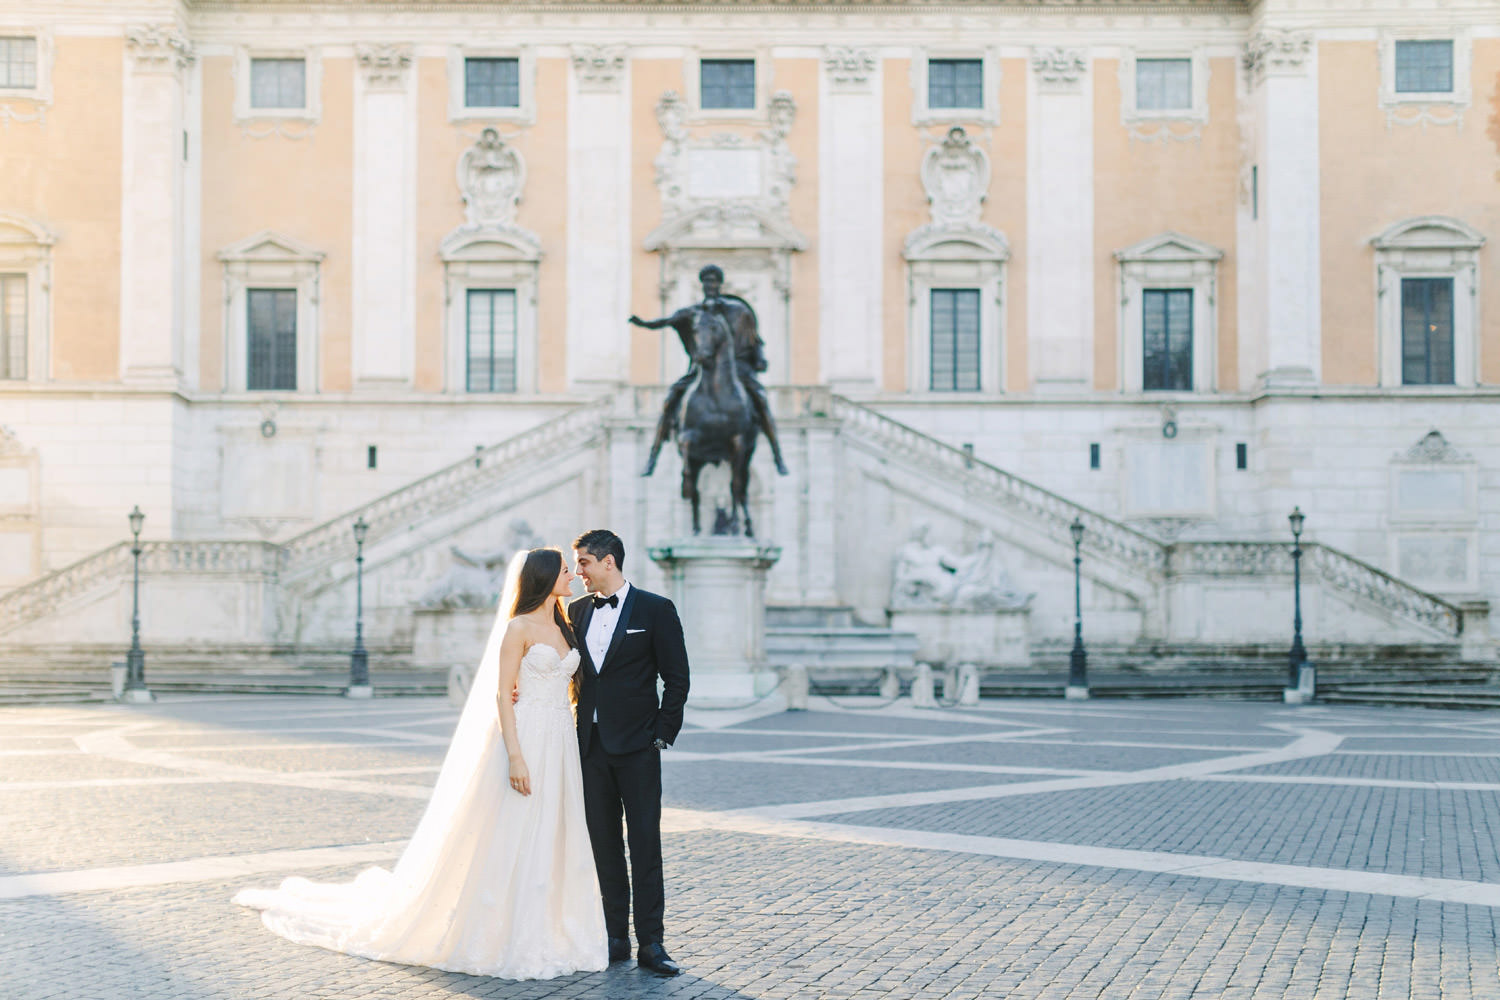 002-rome-wedding-photographer.jpg